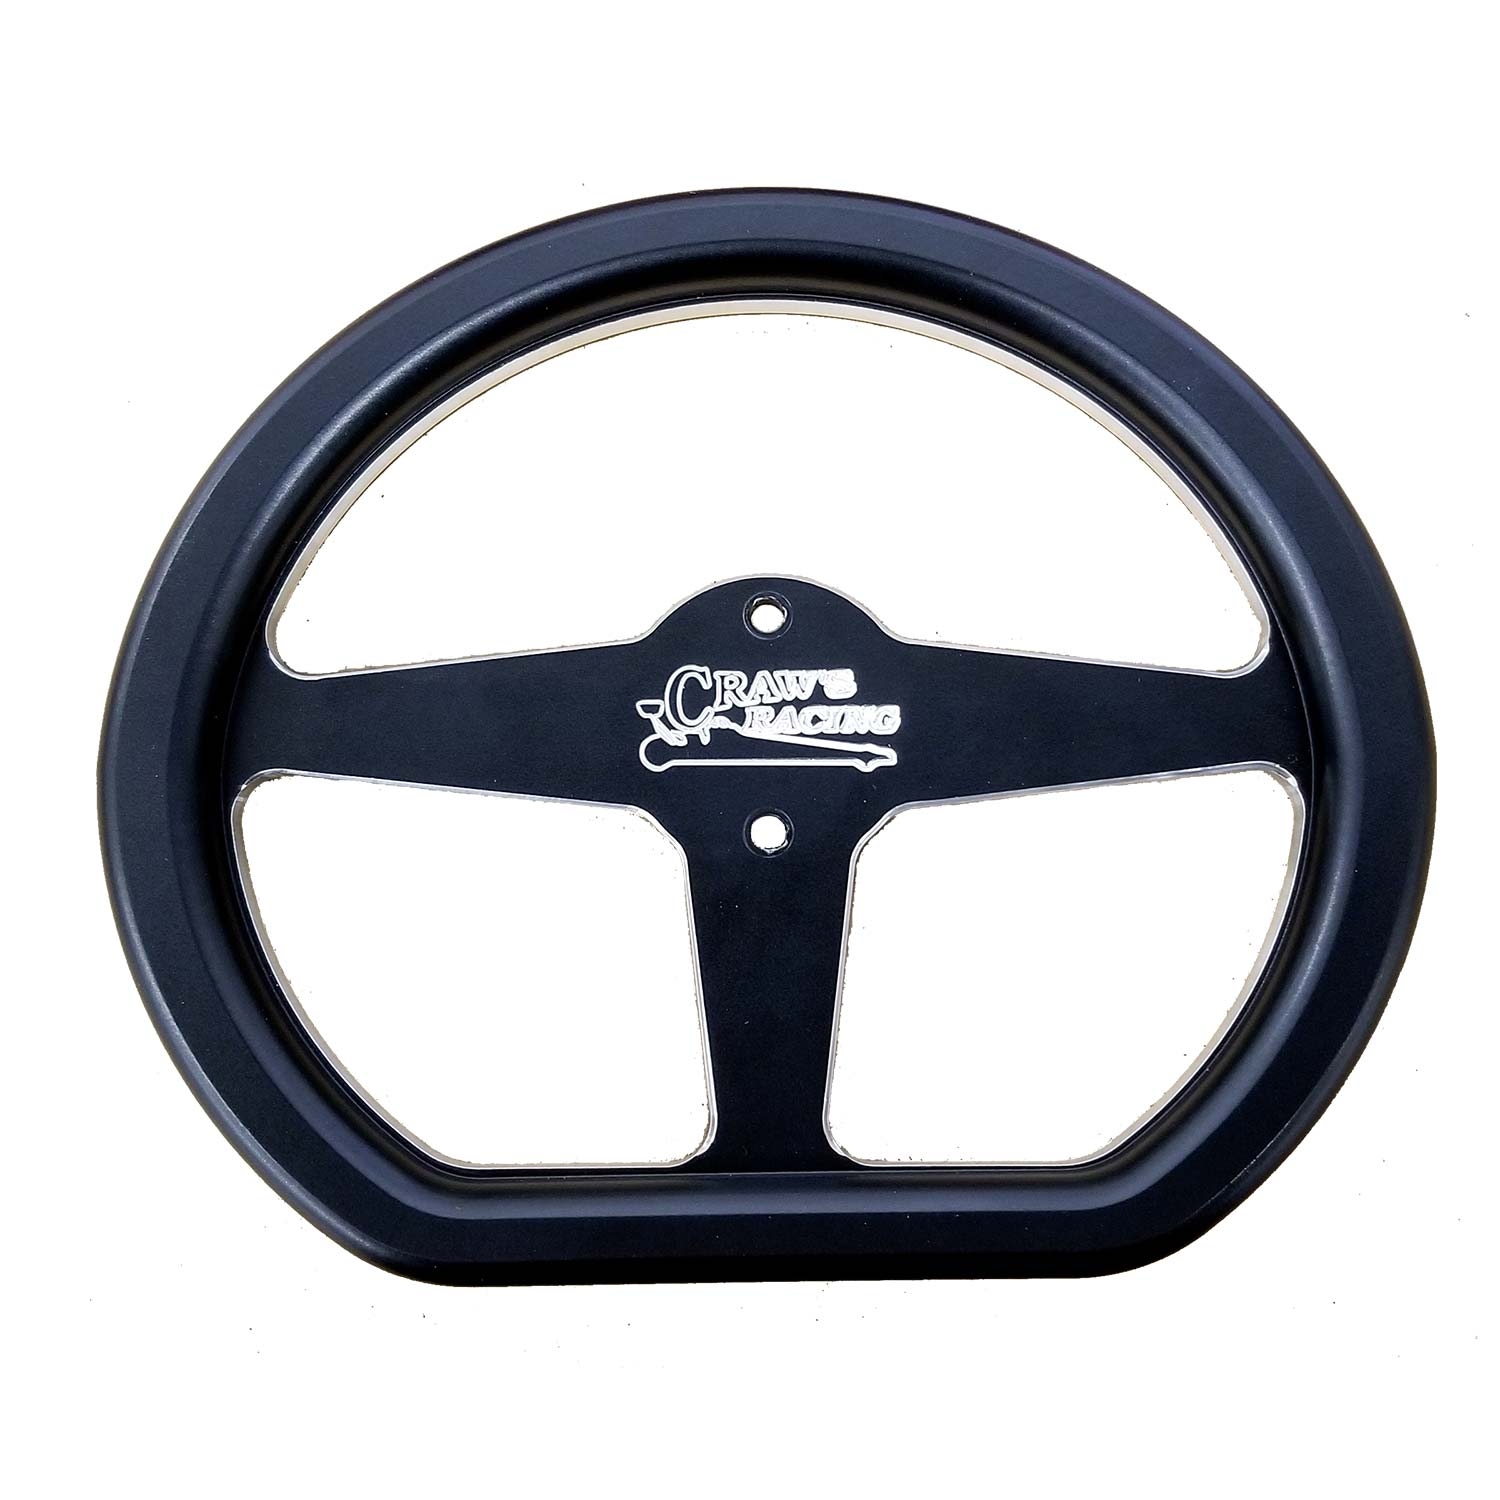 Craws Racing Billet Steering Wheel